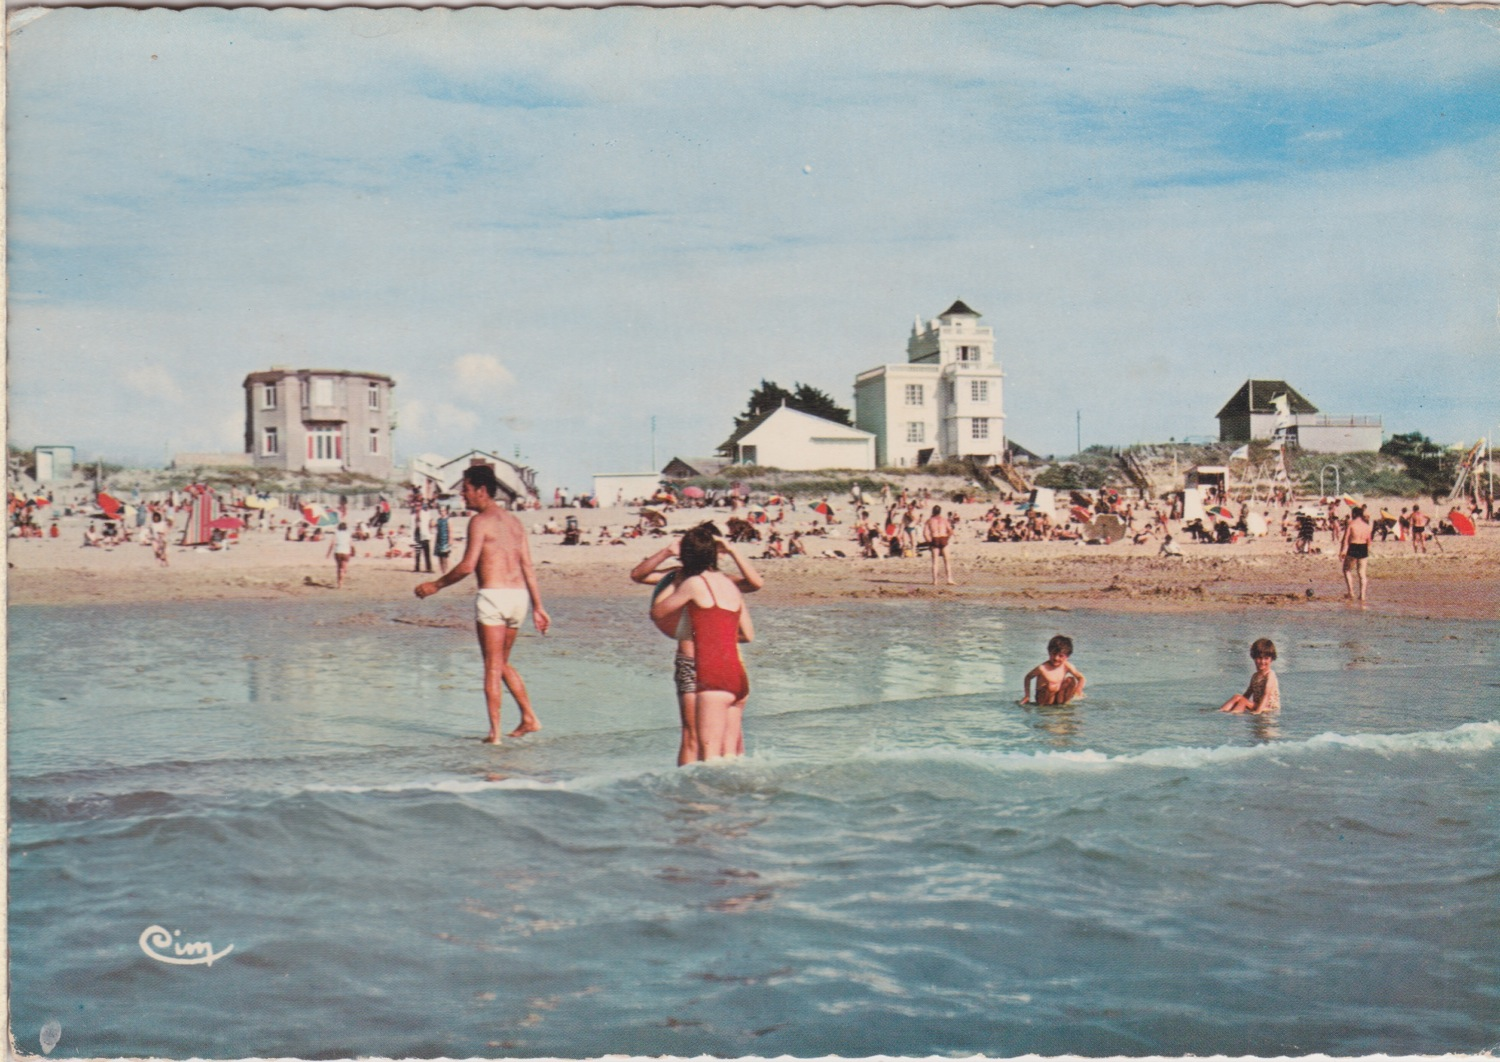 1974 St Martin Plage 7 © collection Jean Claude Ferret